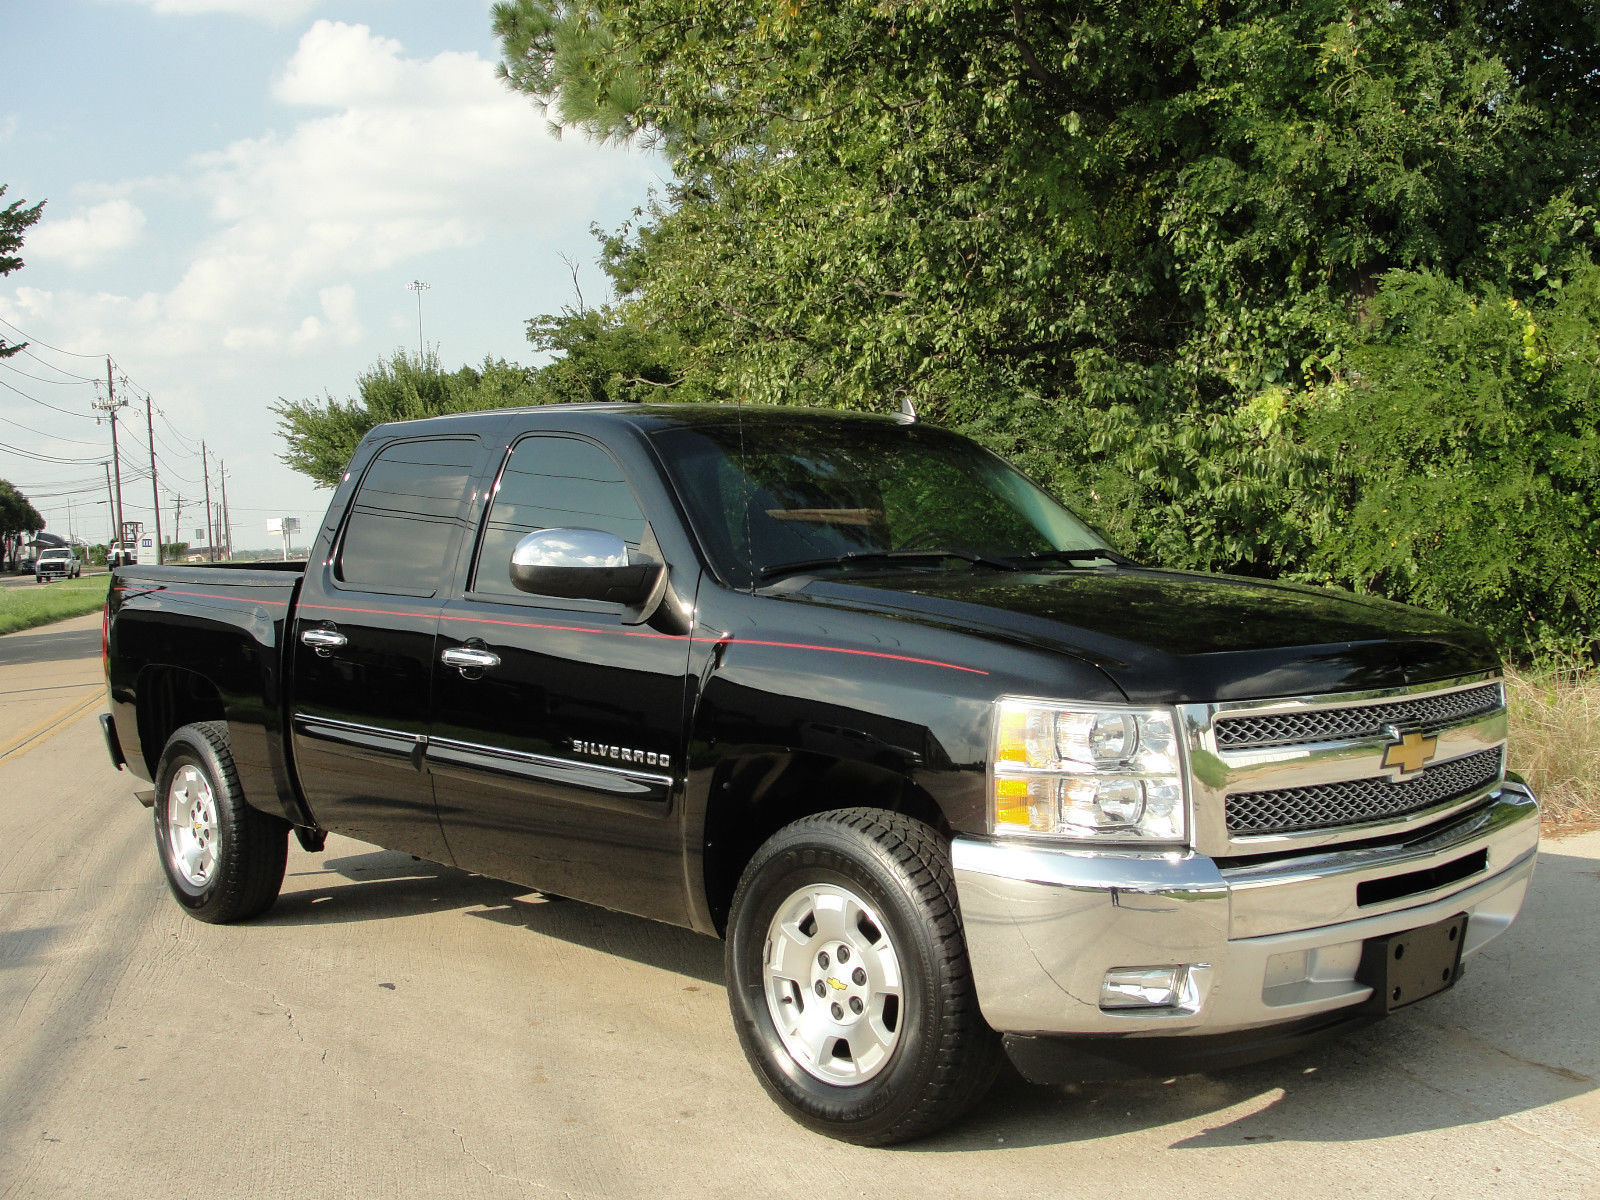 cab item image for chevrolet silverado truck auction pickup crew